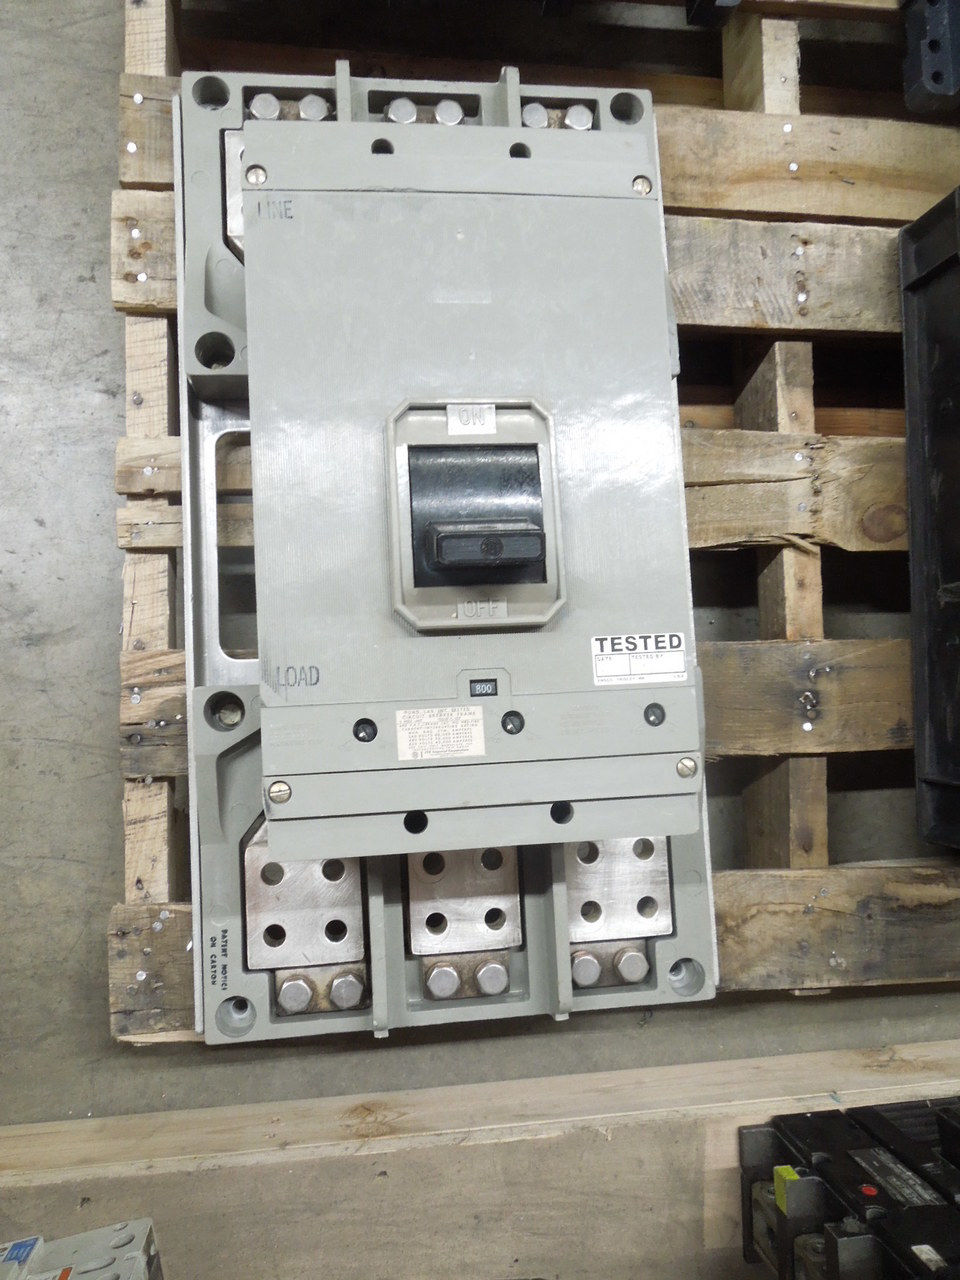 Picture of HP3-F160 ITE Breaker 1600A Frame 800A Rated 600 VAC M/O F/M w/ Test Report